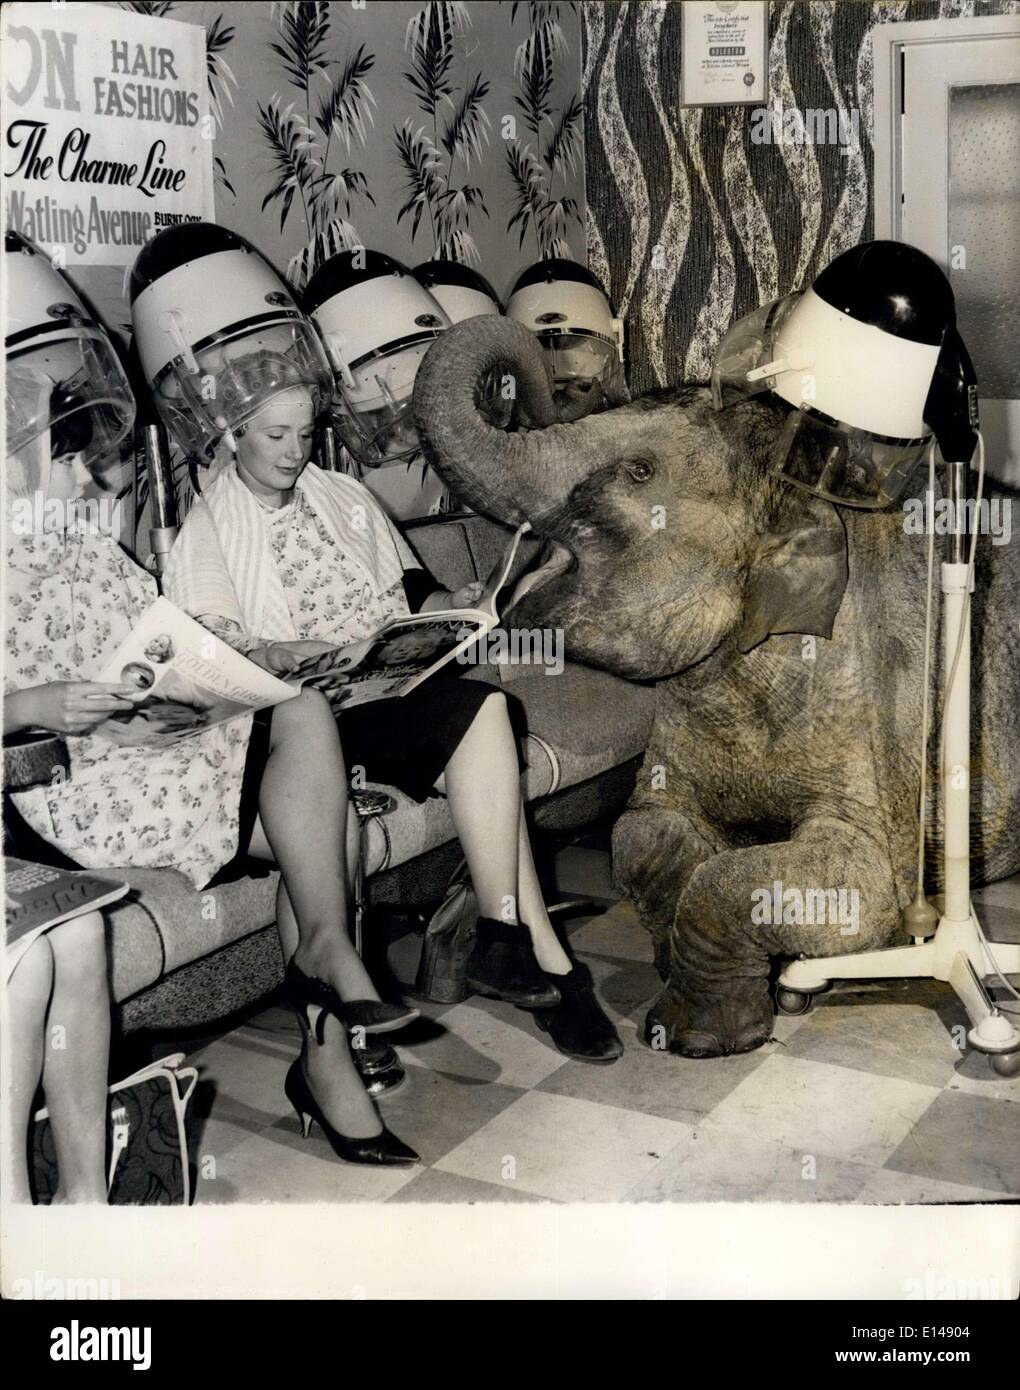 Apr. 17, 2012 - The Coiffeur-Conscious Pachyderm: Enough to make any coiffeur's client's hair curl without his intervention it was. As circus time nears Tamu, baby of the Gosta Kruse elephants from Bertram Mills Circus, feels it's high time he should be spruced up the 'little' chap can't bear to be left alone when Mrs. Joad Kruse goes anywhere-even the hairdressers. And so yesterday when she went to Don Hair Stylists in Edgeware, Tamu went with her, not only for company, but to have his bristly hair attended to. Although the atmosphere was slightly warm, not one of Mr - Stock Image